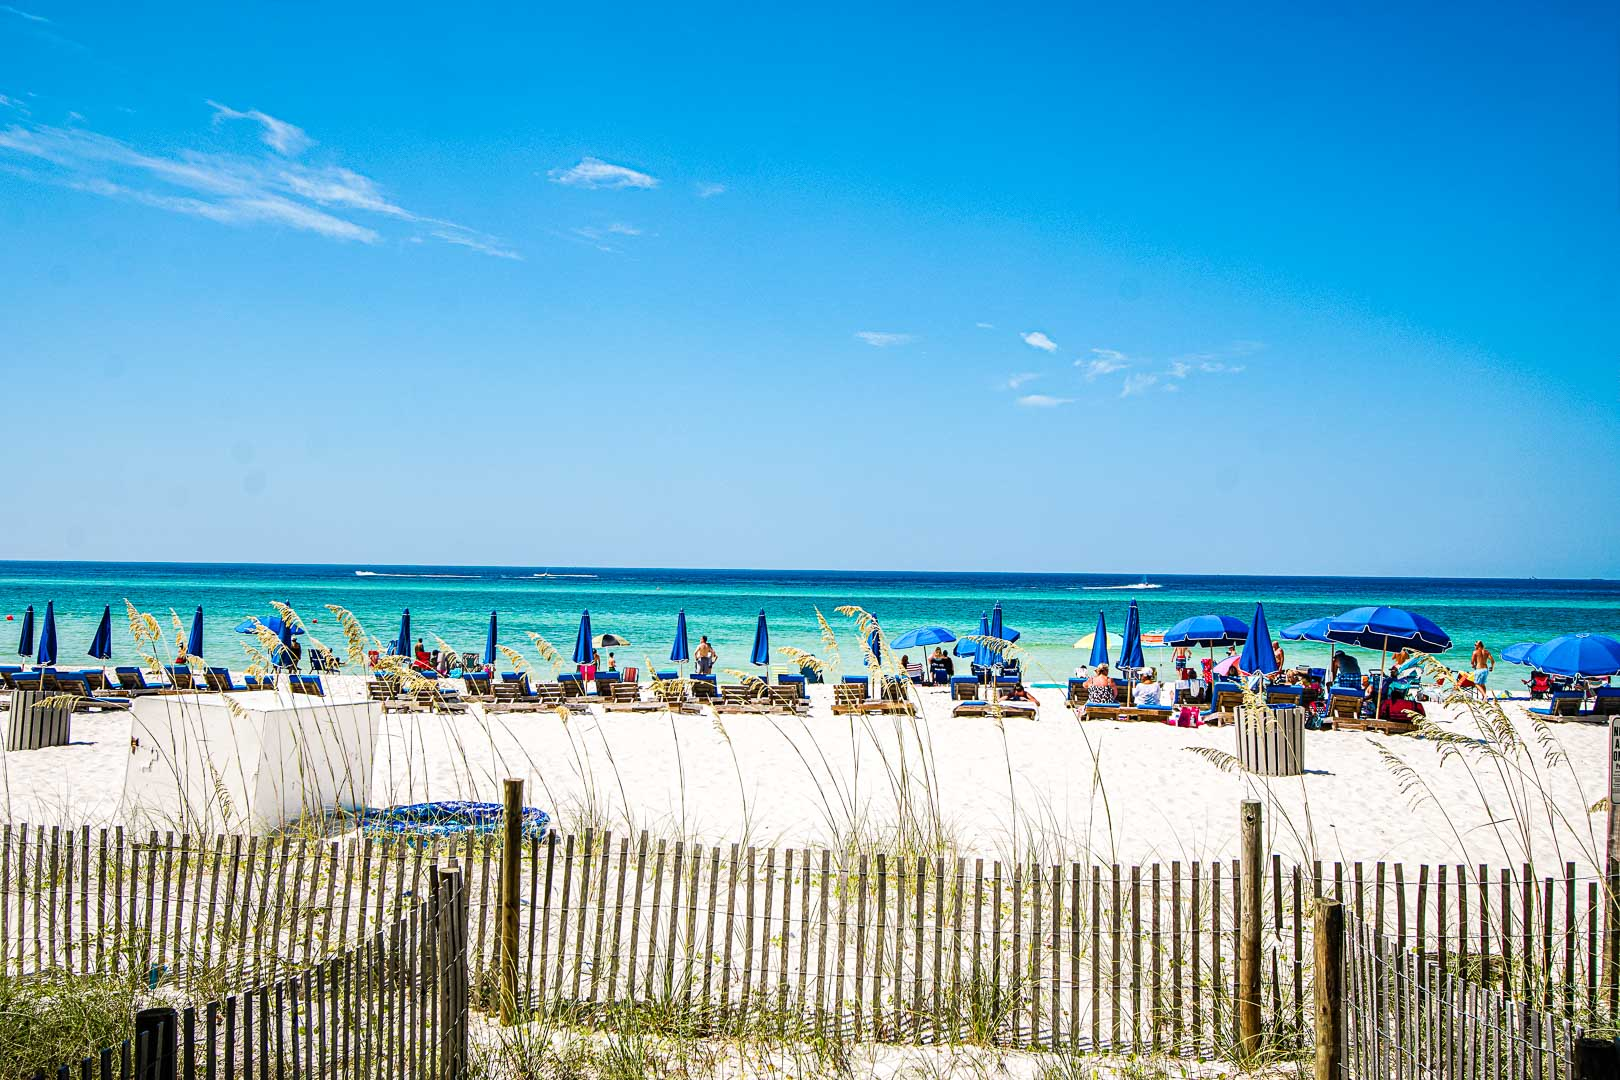 A scenic view of the beach from VRI's Landmark Holiday Beach Resort in Panama City, Florida.